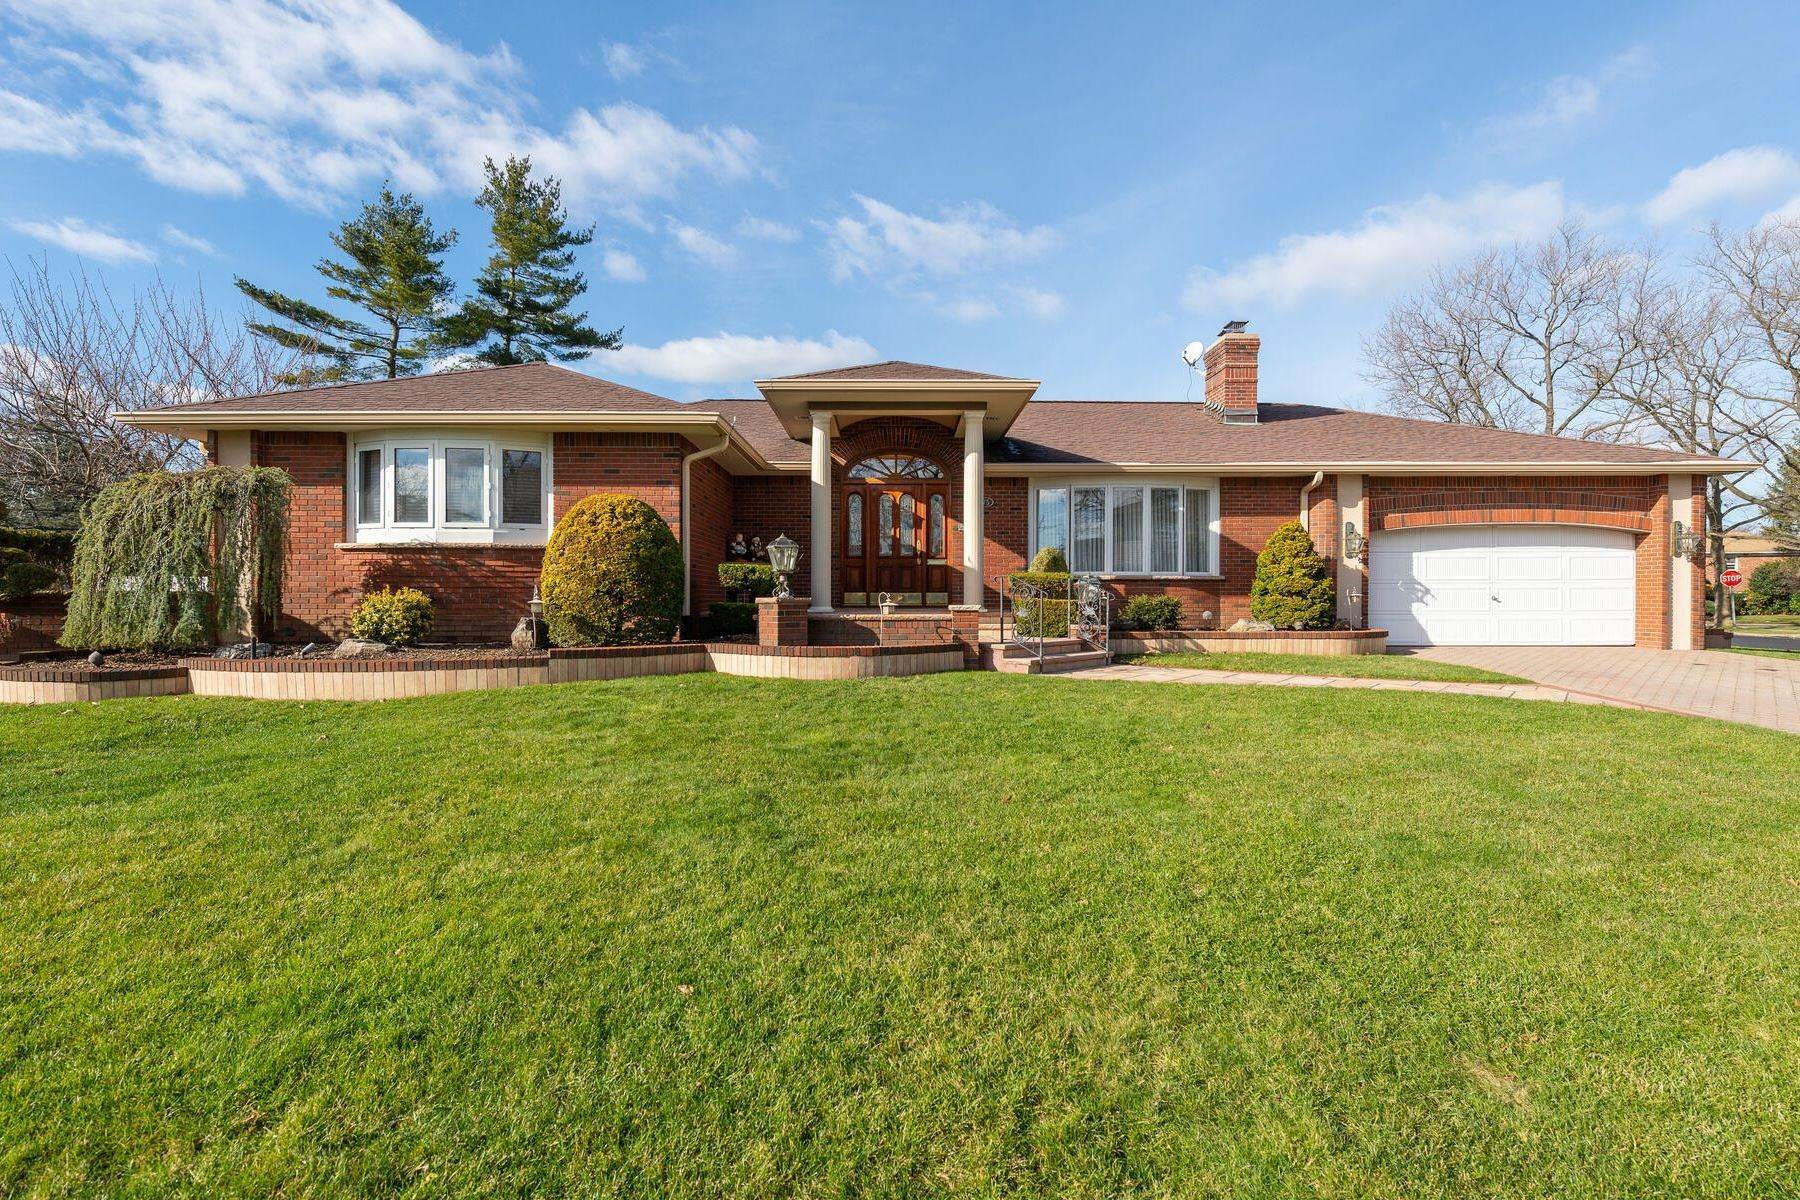 Single Family Homes for Sale at 775 Kensington Drive, Westbury, NY 11590 775 Kensington Drive Westbury, New York 11590 United States